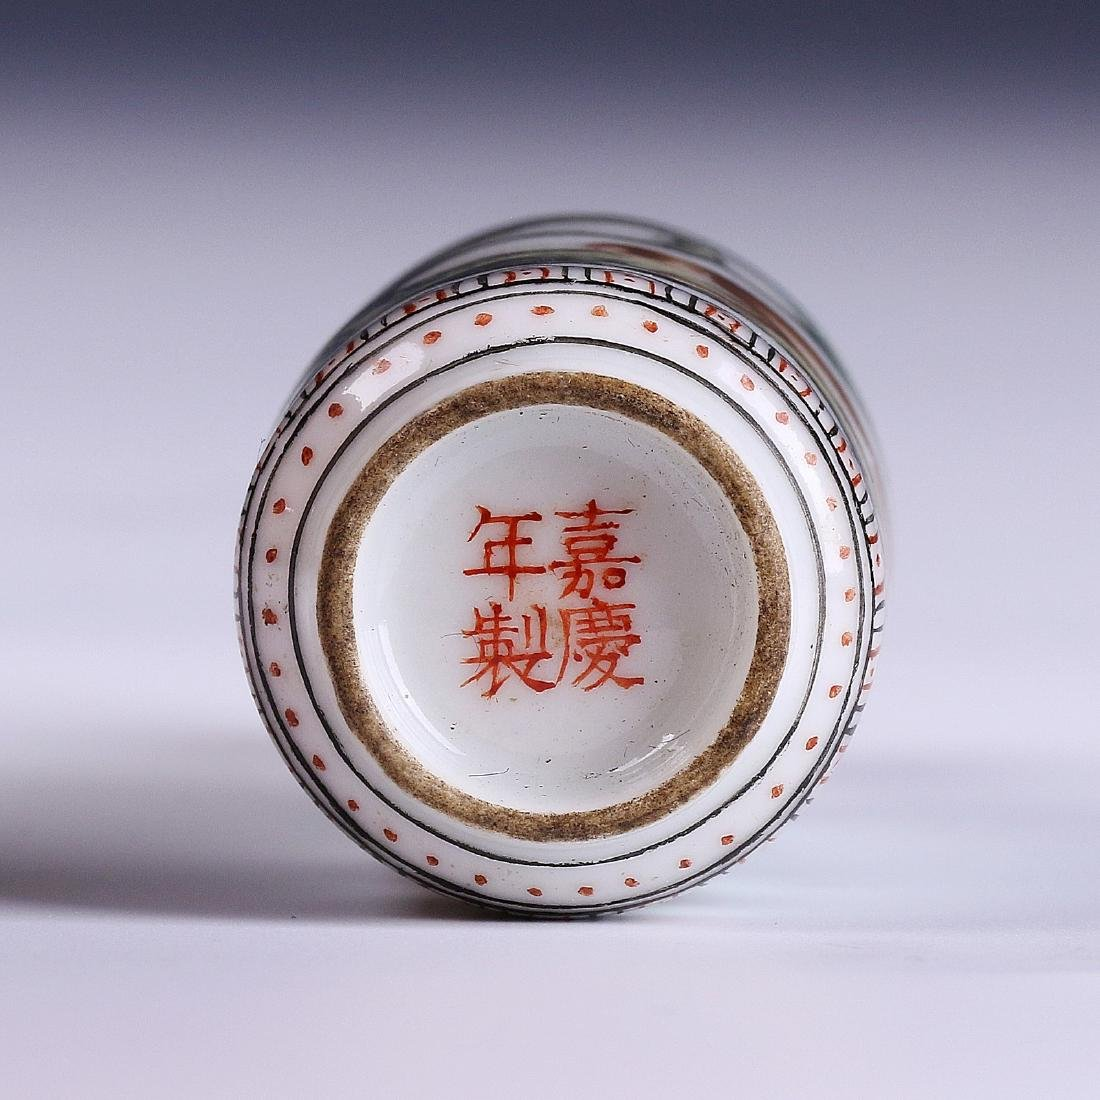 A Chinese Porcelain Snuff Bottle - 3